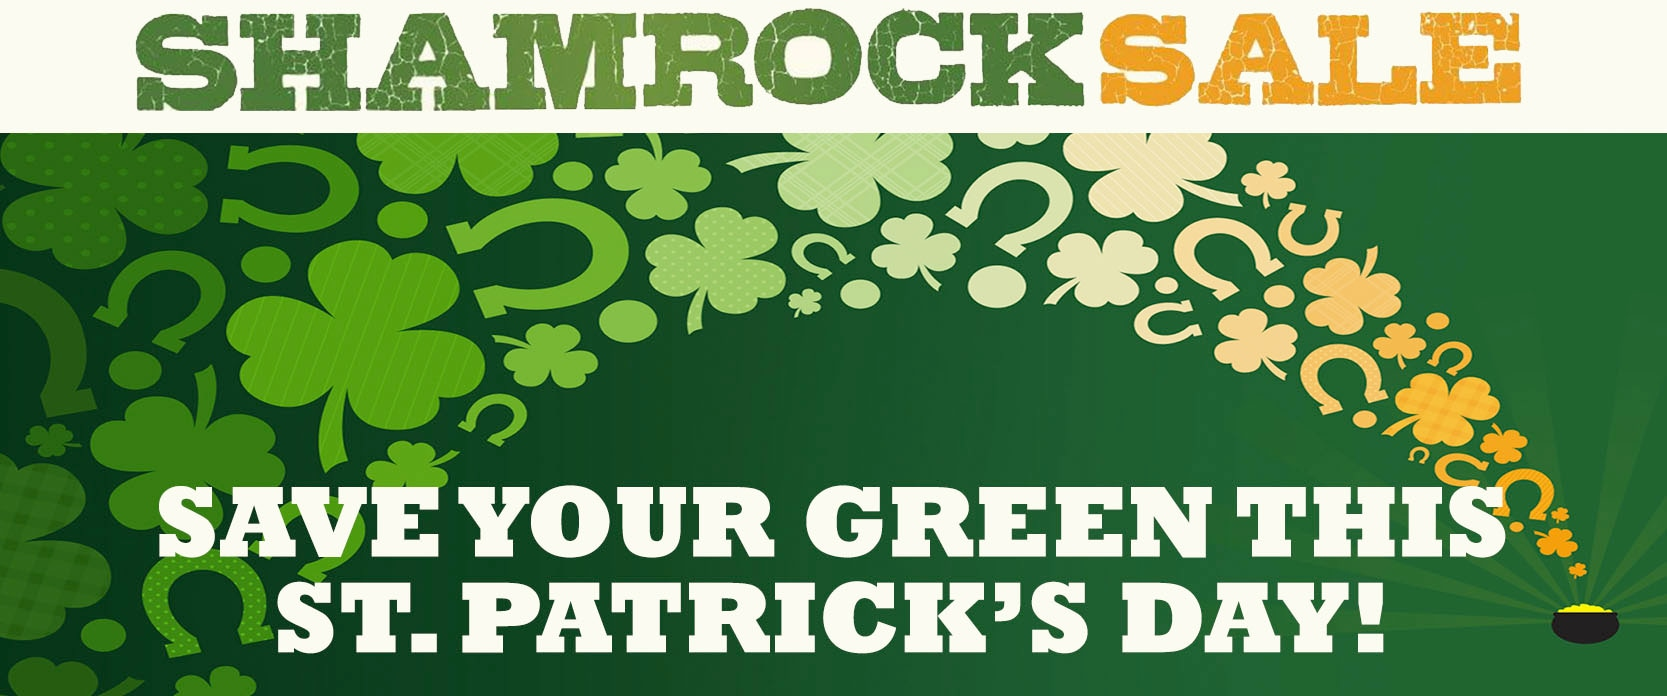 St Patrick's Day Offers Courtesy Toyota of Brandon serving Tampa